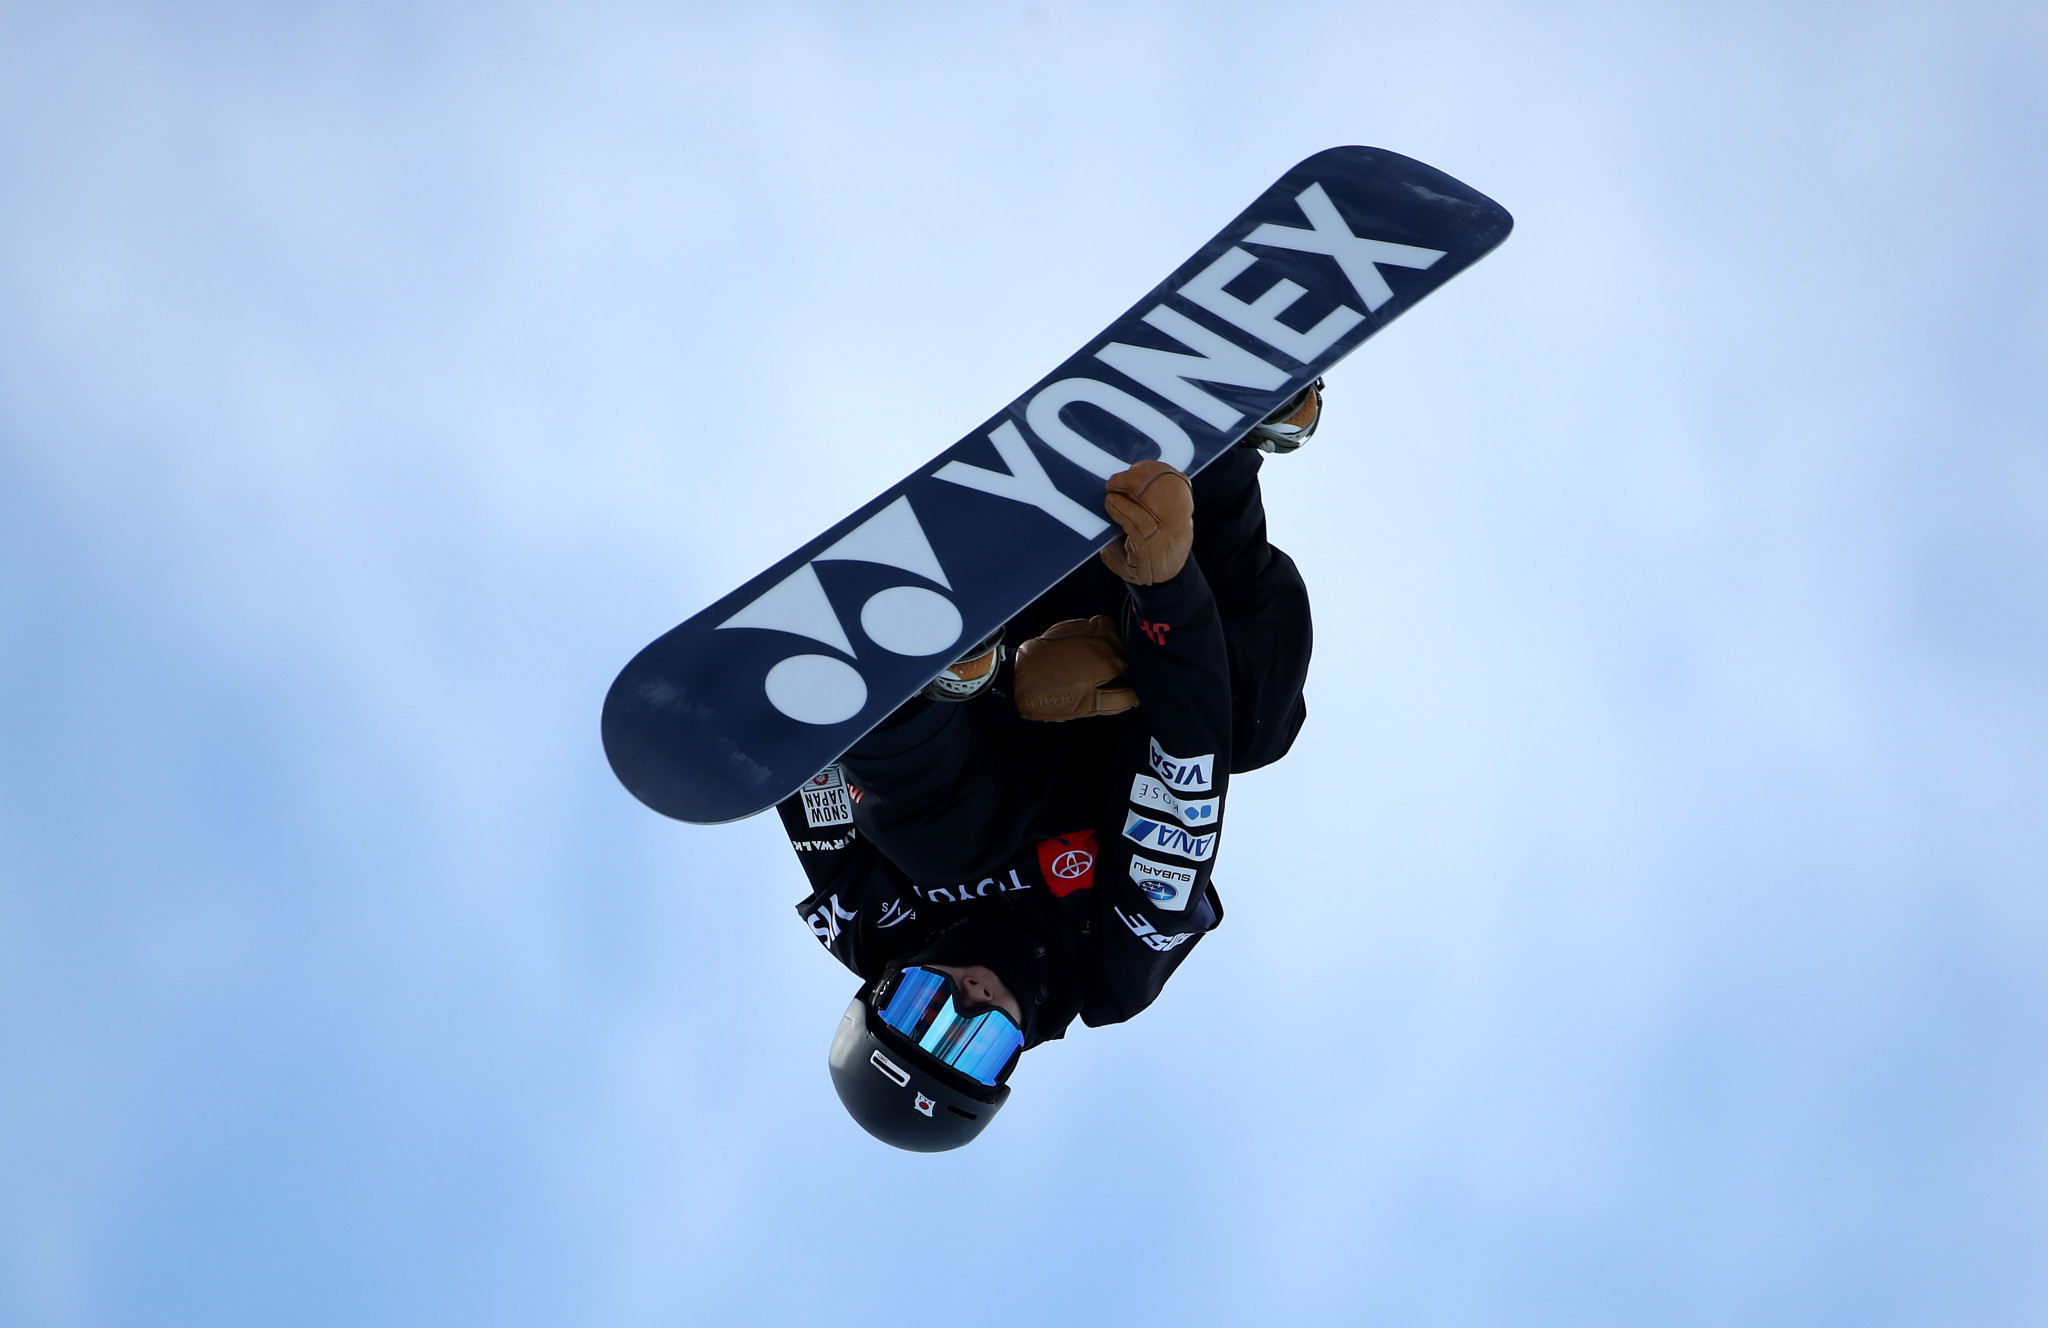 Japan's Totsuka and Imai top halfpipe qualification standings at FIS Snowboard World Cup in Calgary